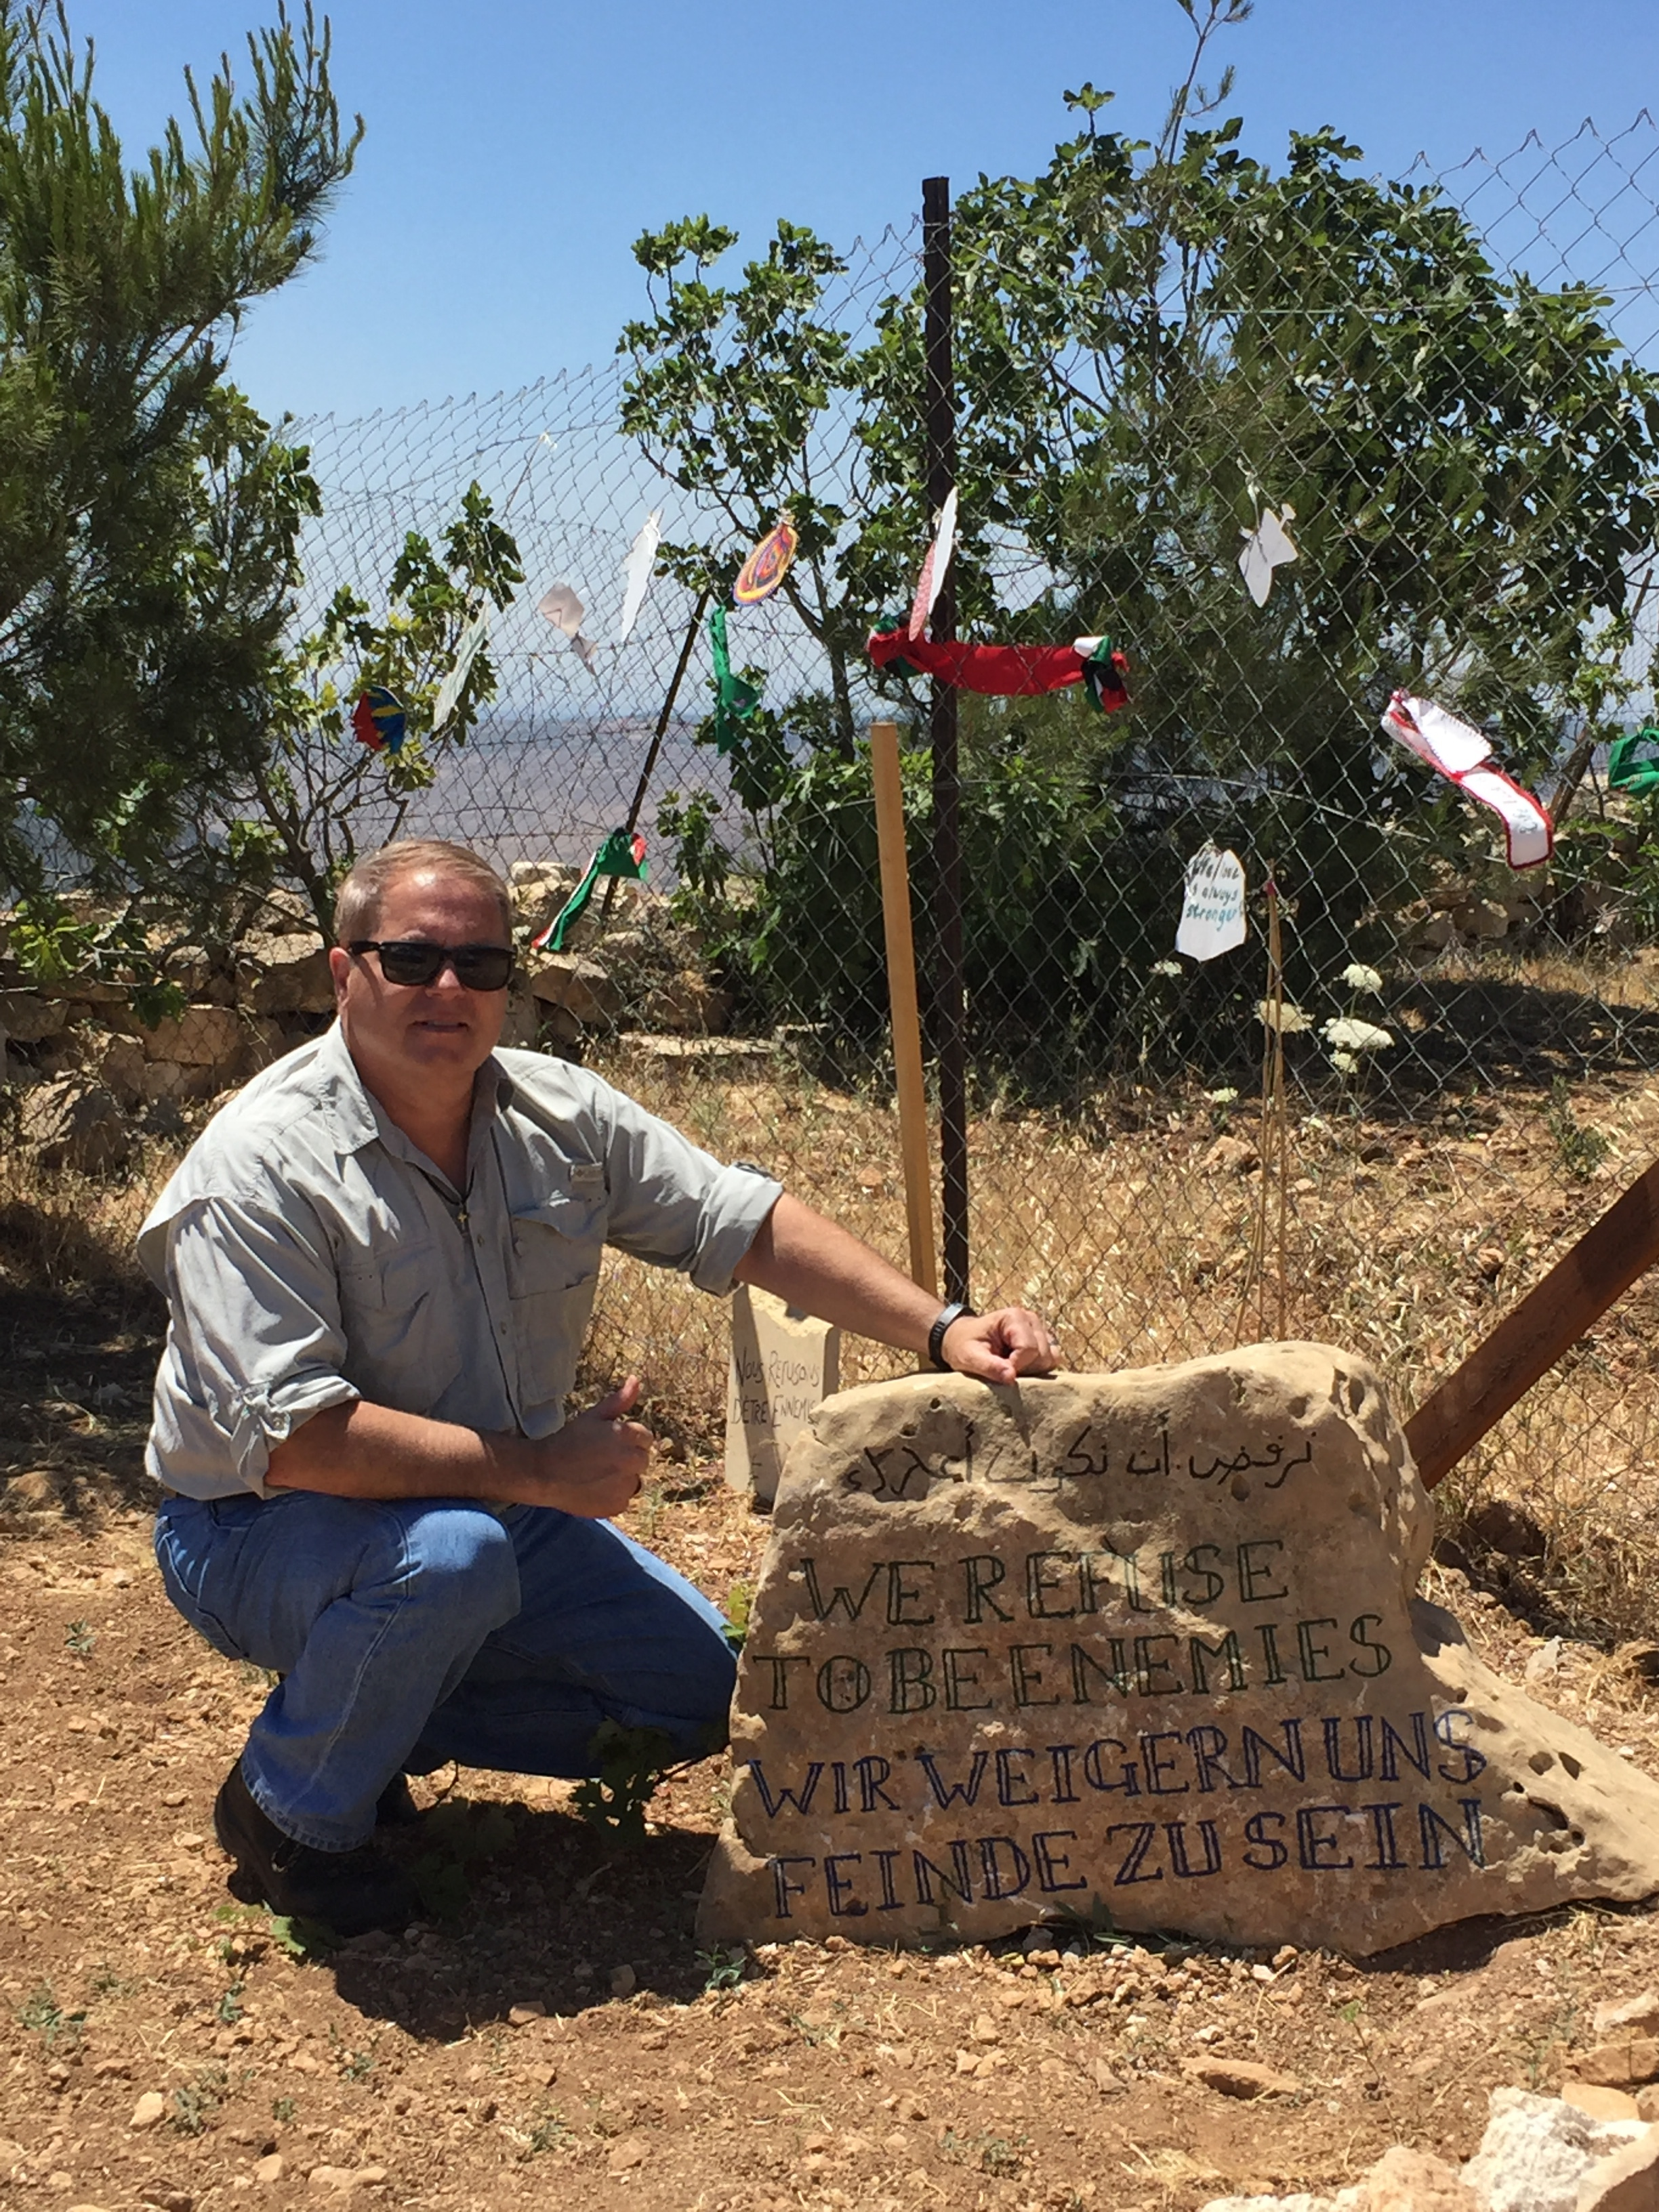 """At the entrance to the Tent of Nation. The stone says, """"We refuse to be enemies'"""" in Hebrew, English, and Arabic."""